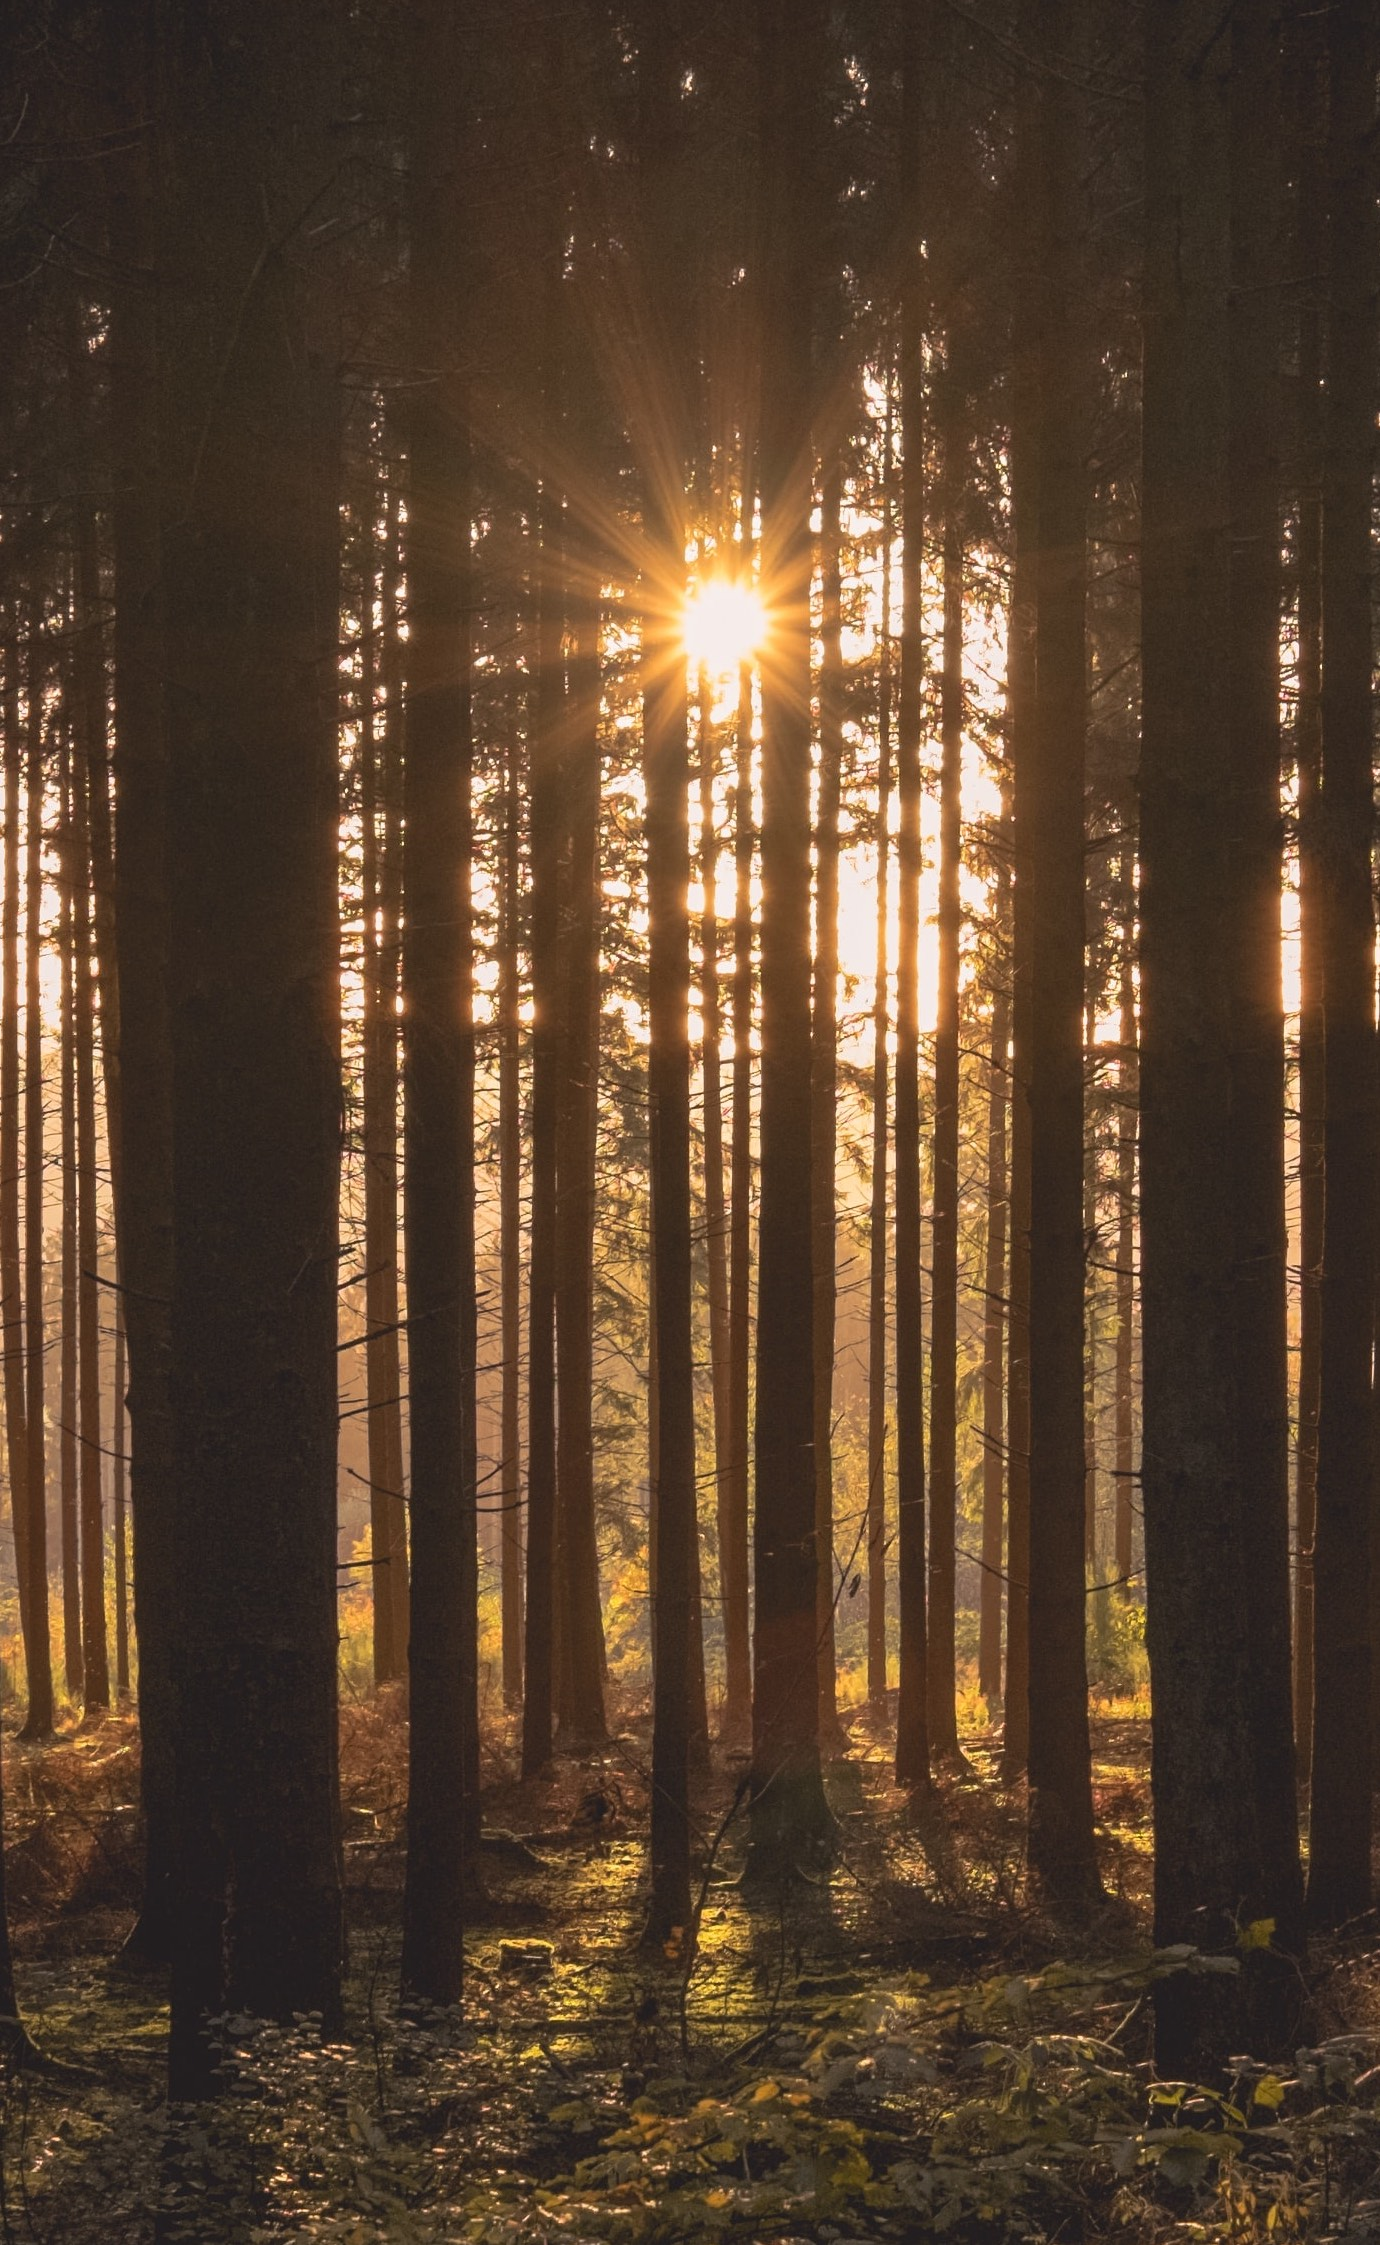 the sun shining through trees in a forest